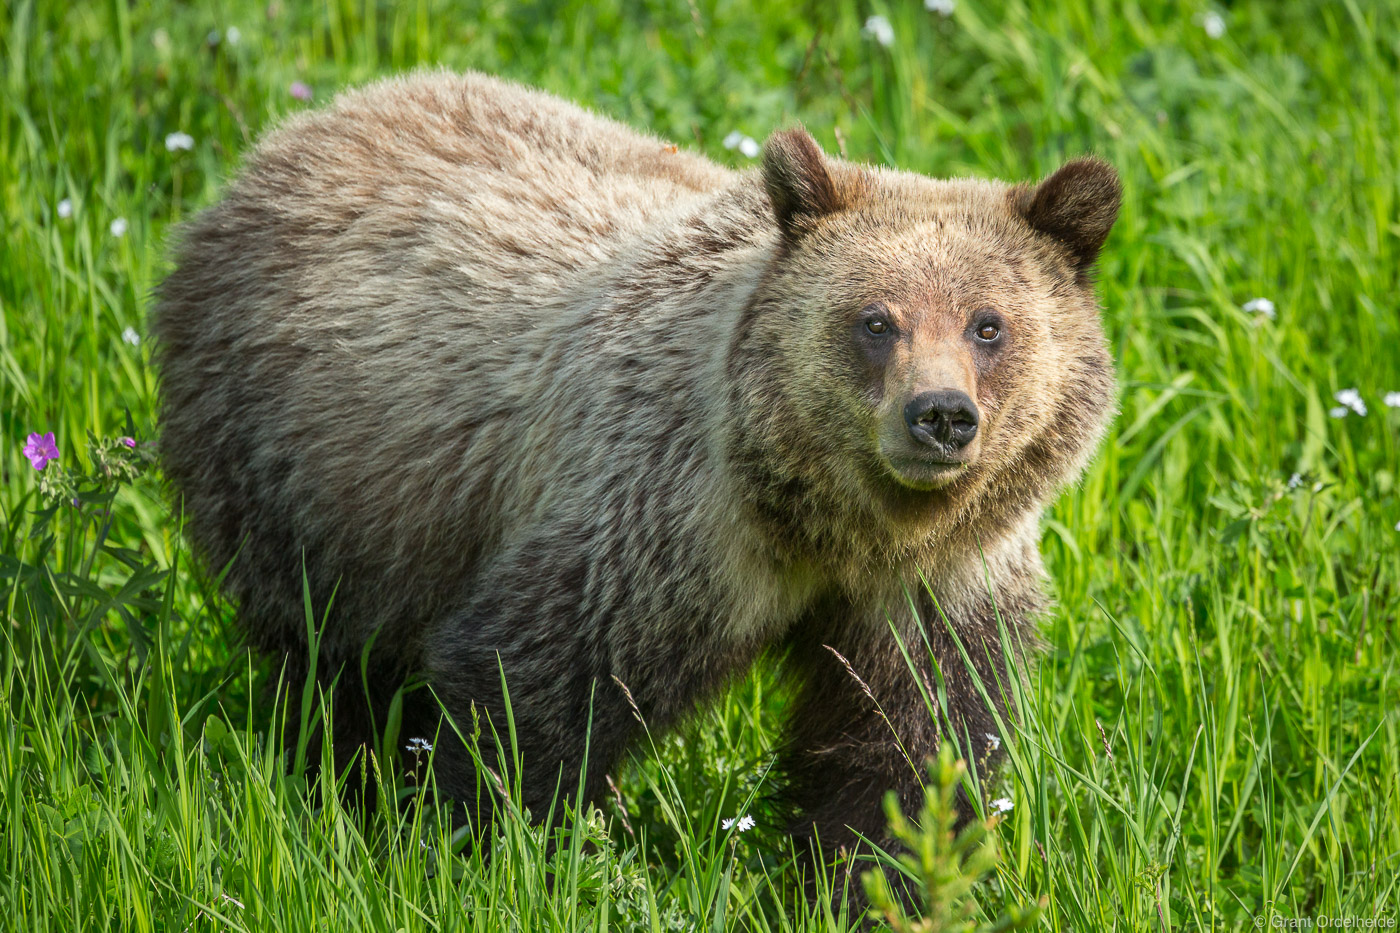 A grizzly bear wanders just outside of Yellowstone National Park.